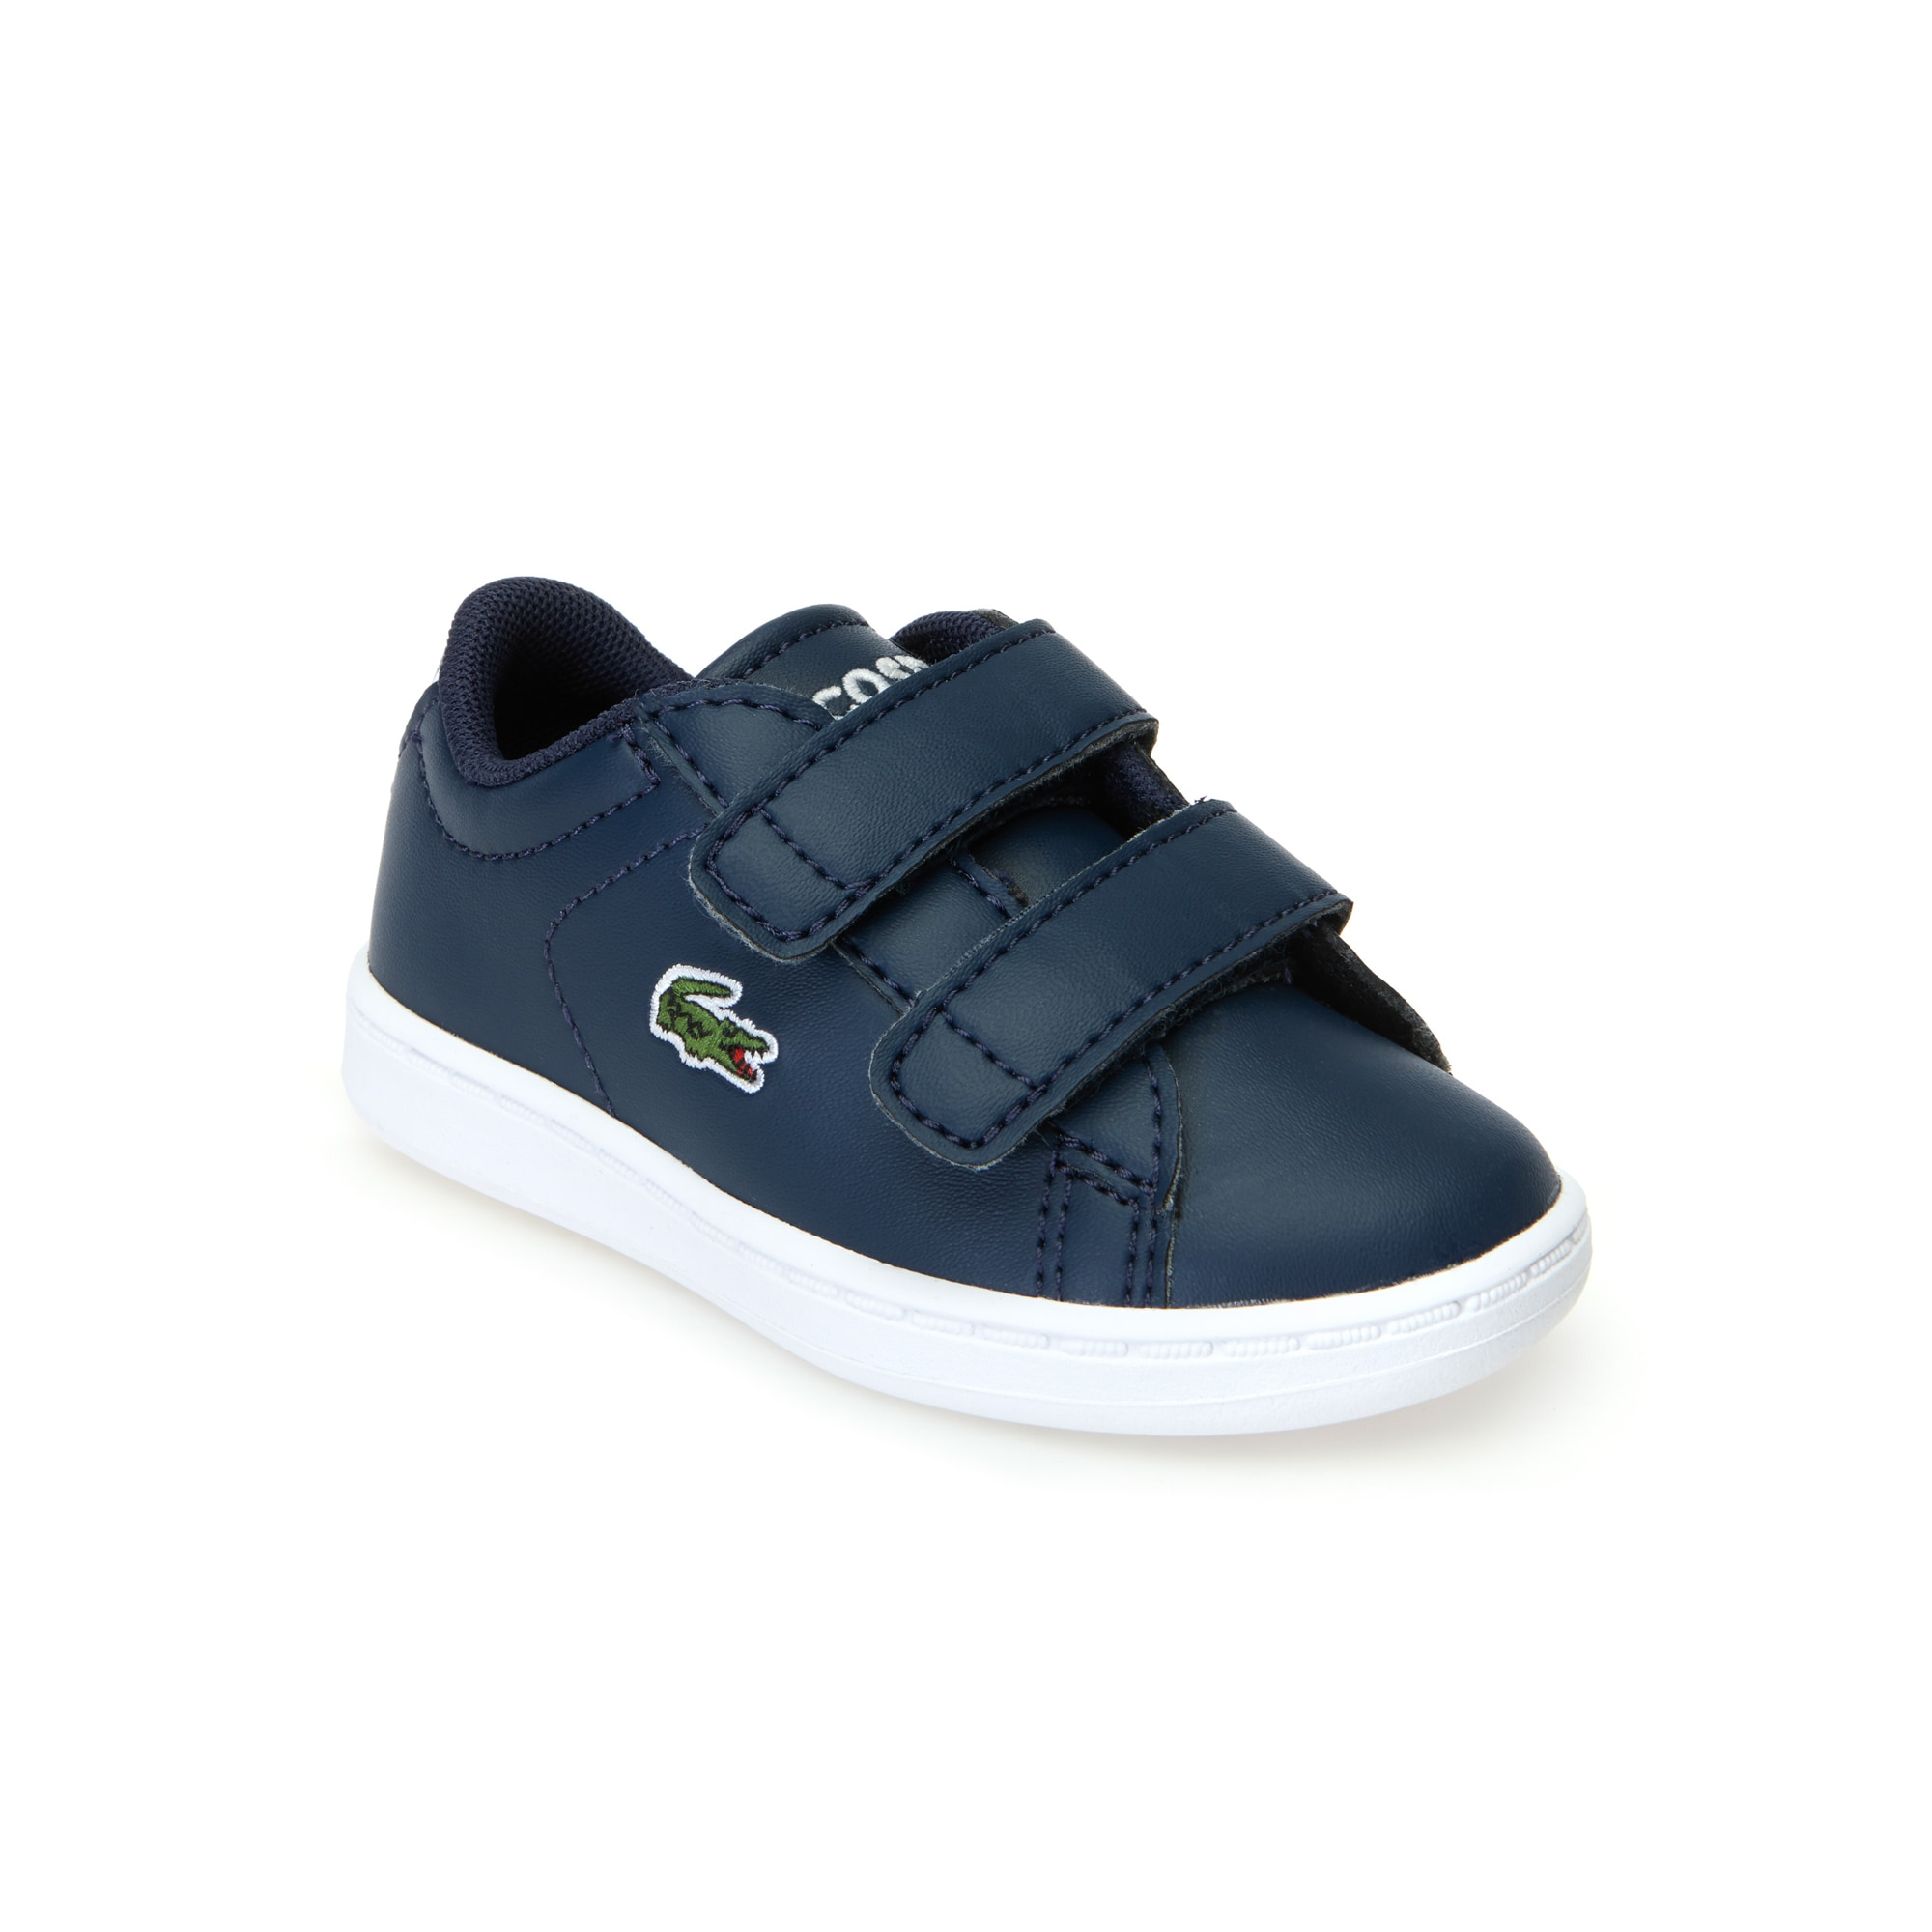 63a73b1b5ebcd0 Children s L.ight Metallic Textile and Synthetic Trainers. £42.50. + 1 color